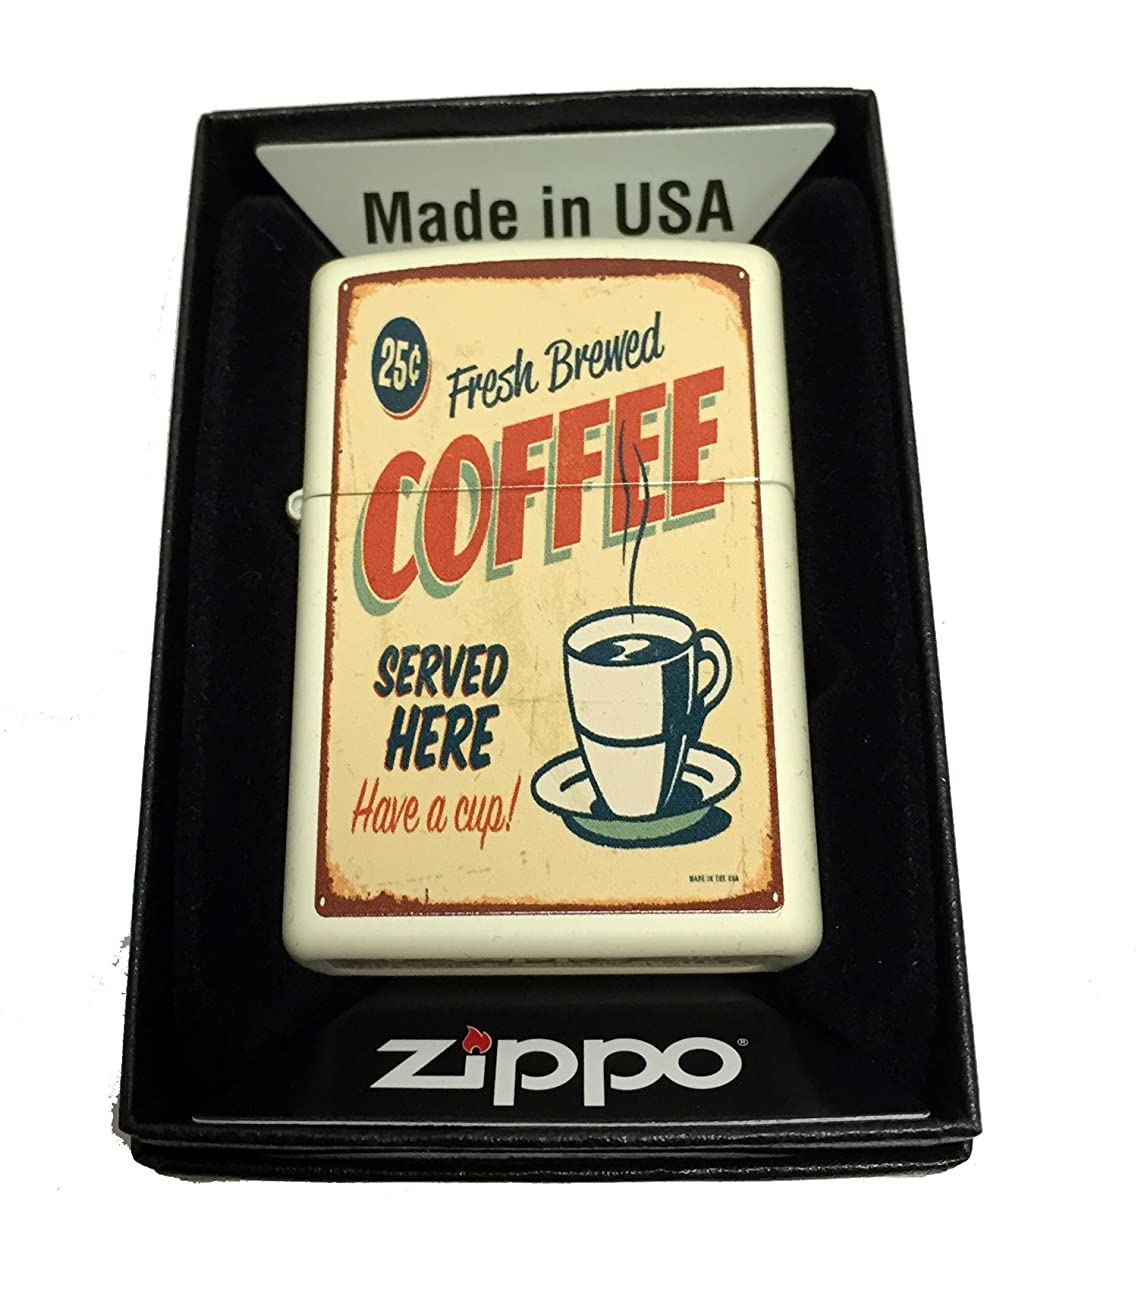 Zippo Custom Lighter - 1950's Vintage Coffee Poster - Regular Cream Matte 0